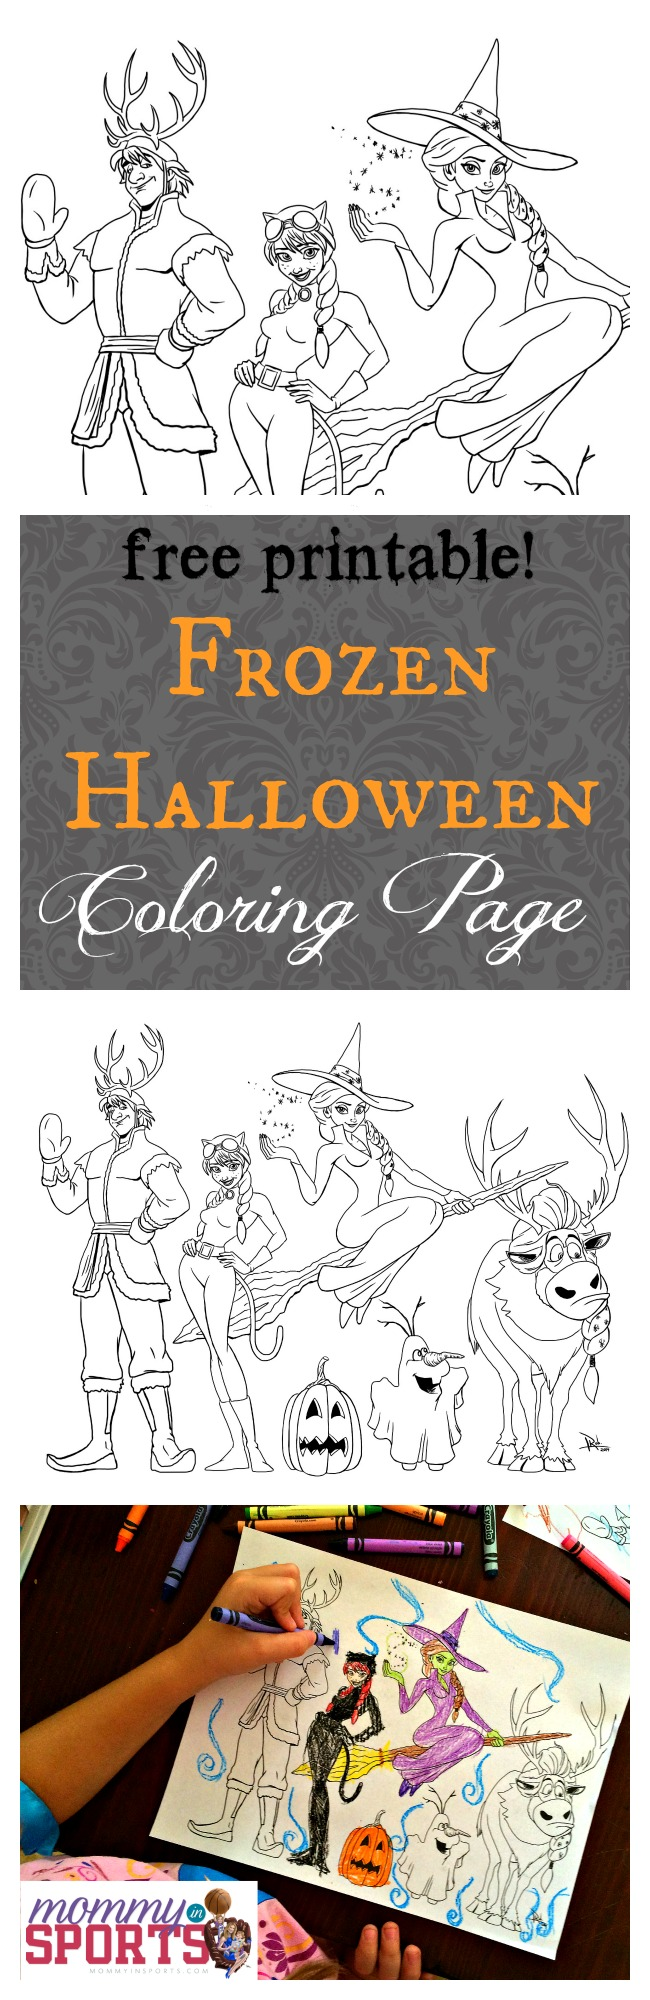 Frozen Halloween Printable Coloring Pages : Frozen halloween coloring page mommy in sports